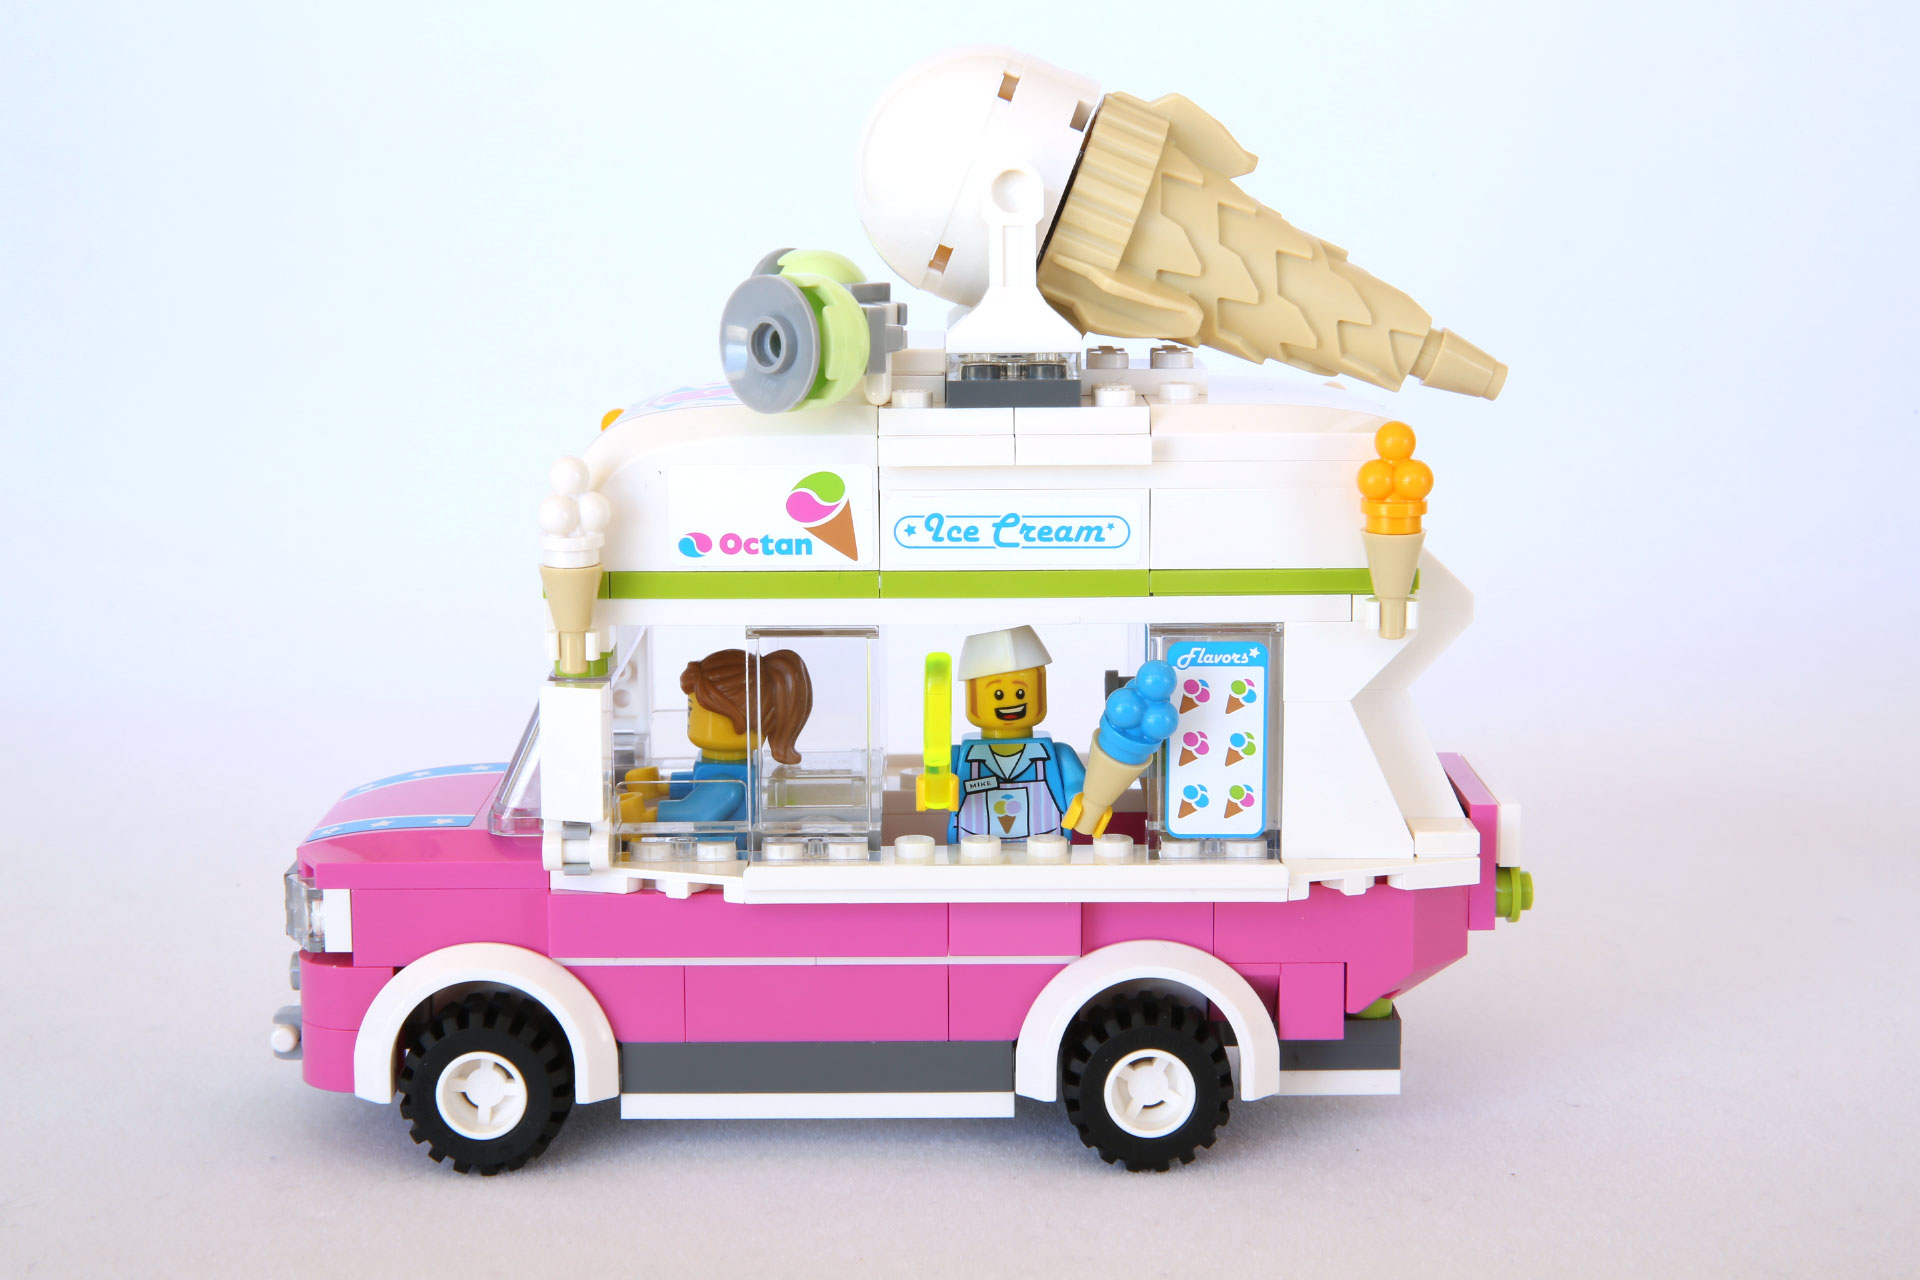 70804-Ice-Cream-Machine-13.jpg